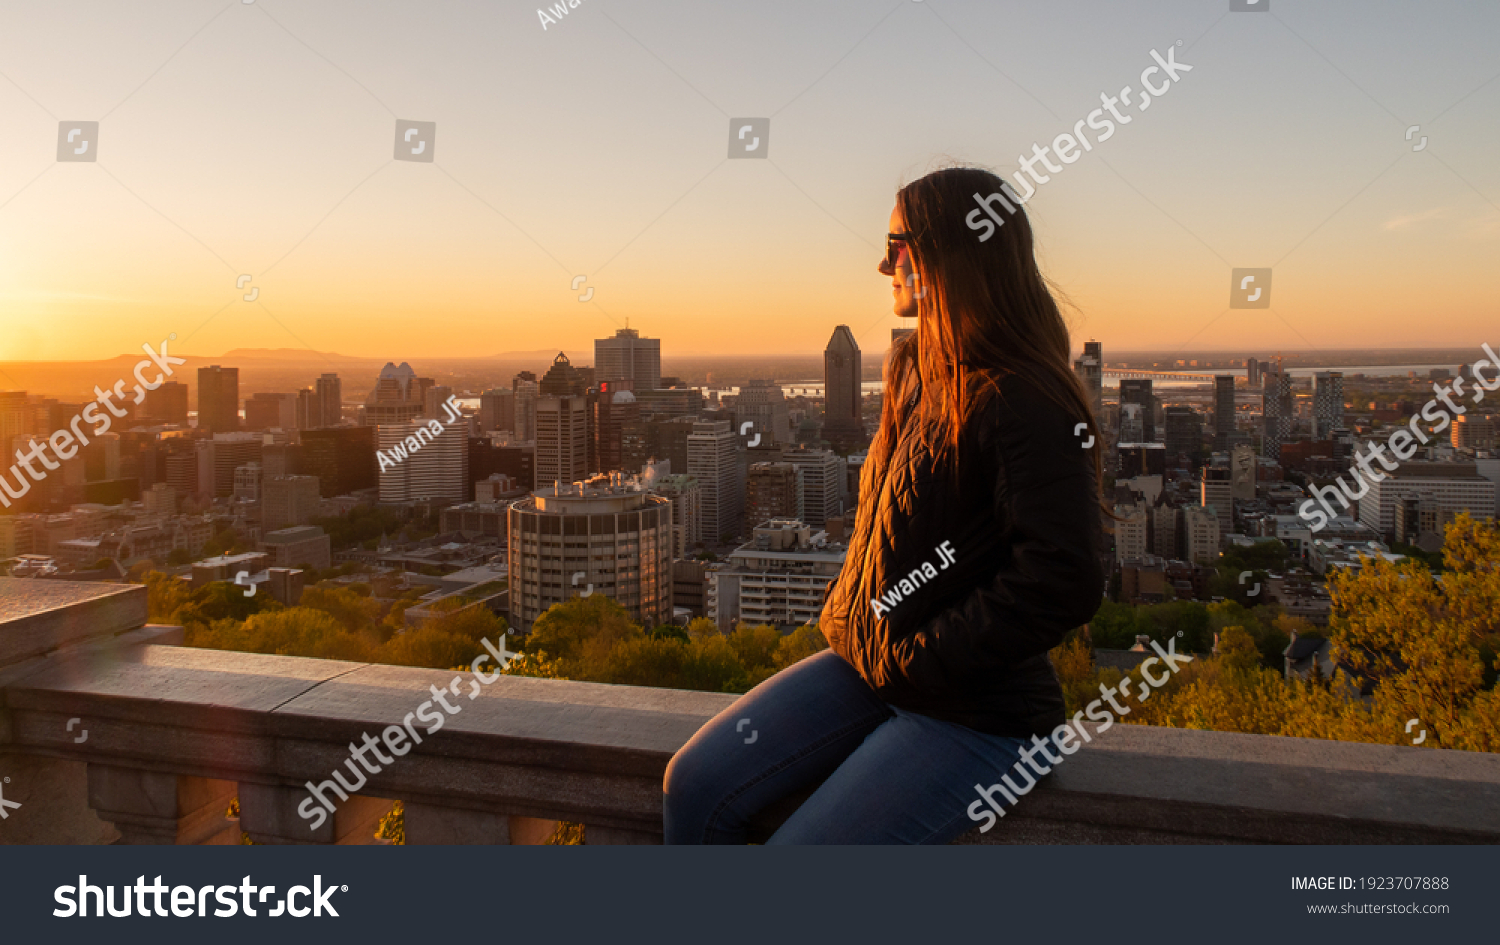 stock-photo-montreal-canada-may-young-wo